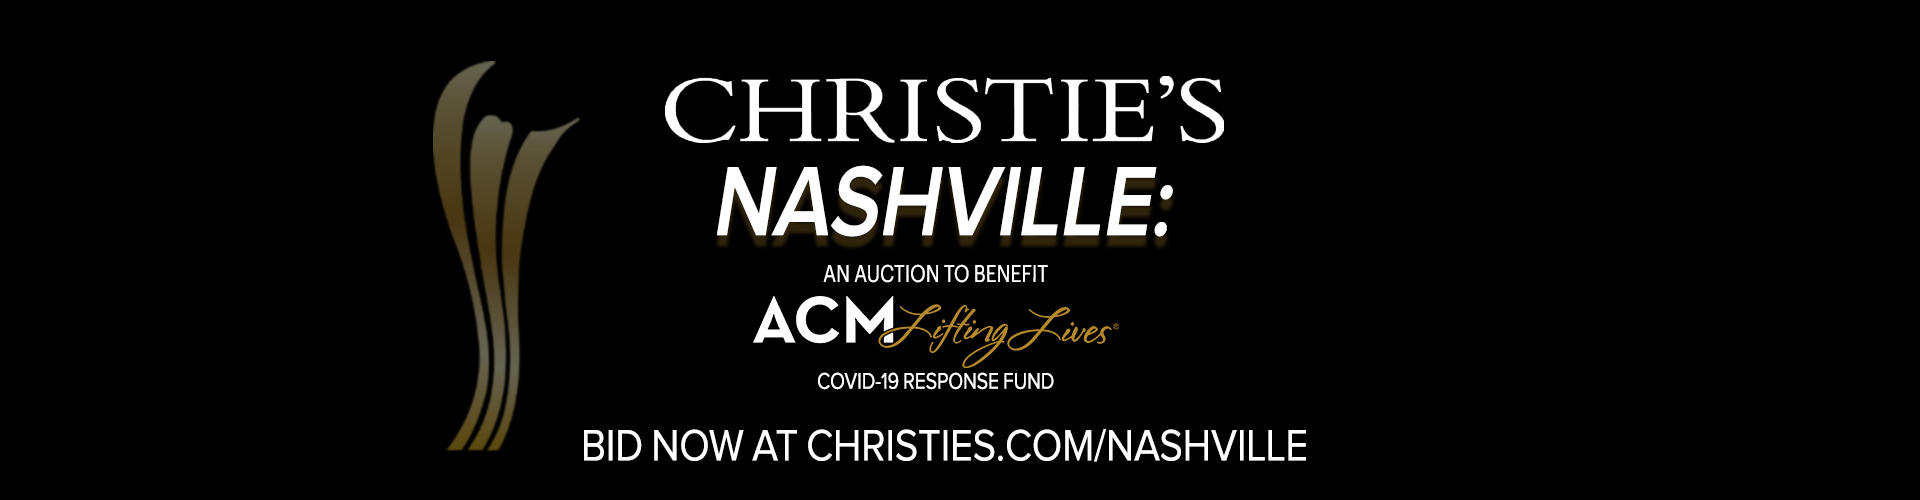 Christie_s Auction _ ACM LL Web Banner 1920x500.jpg